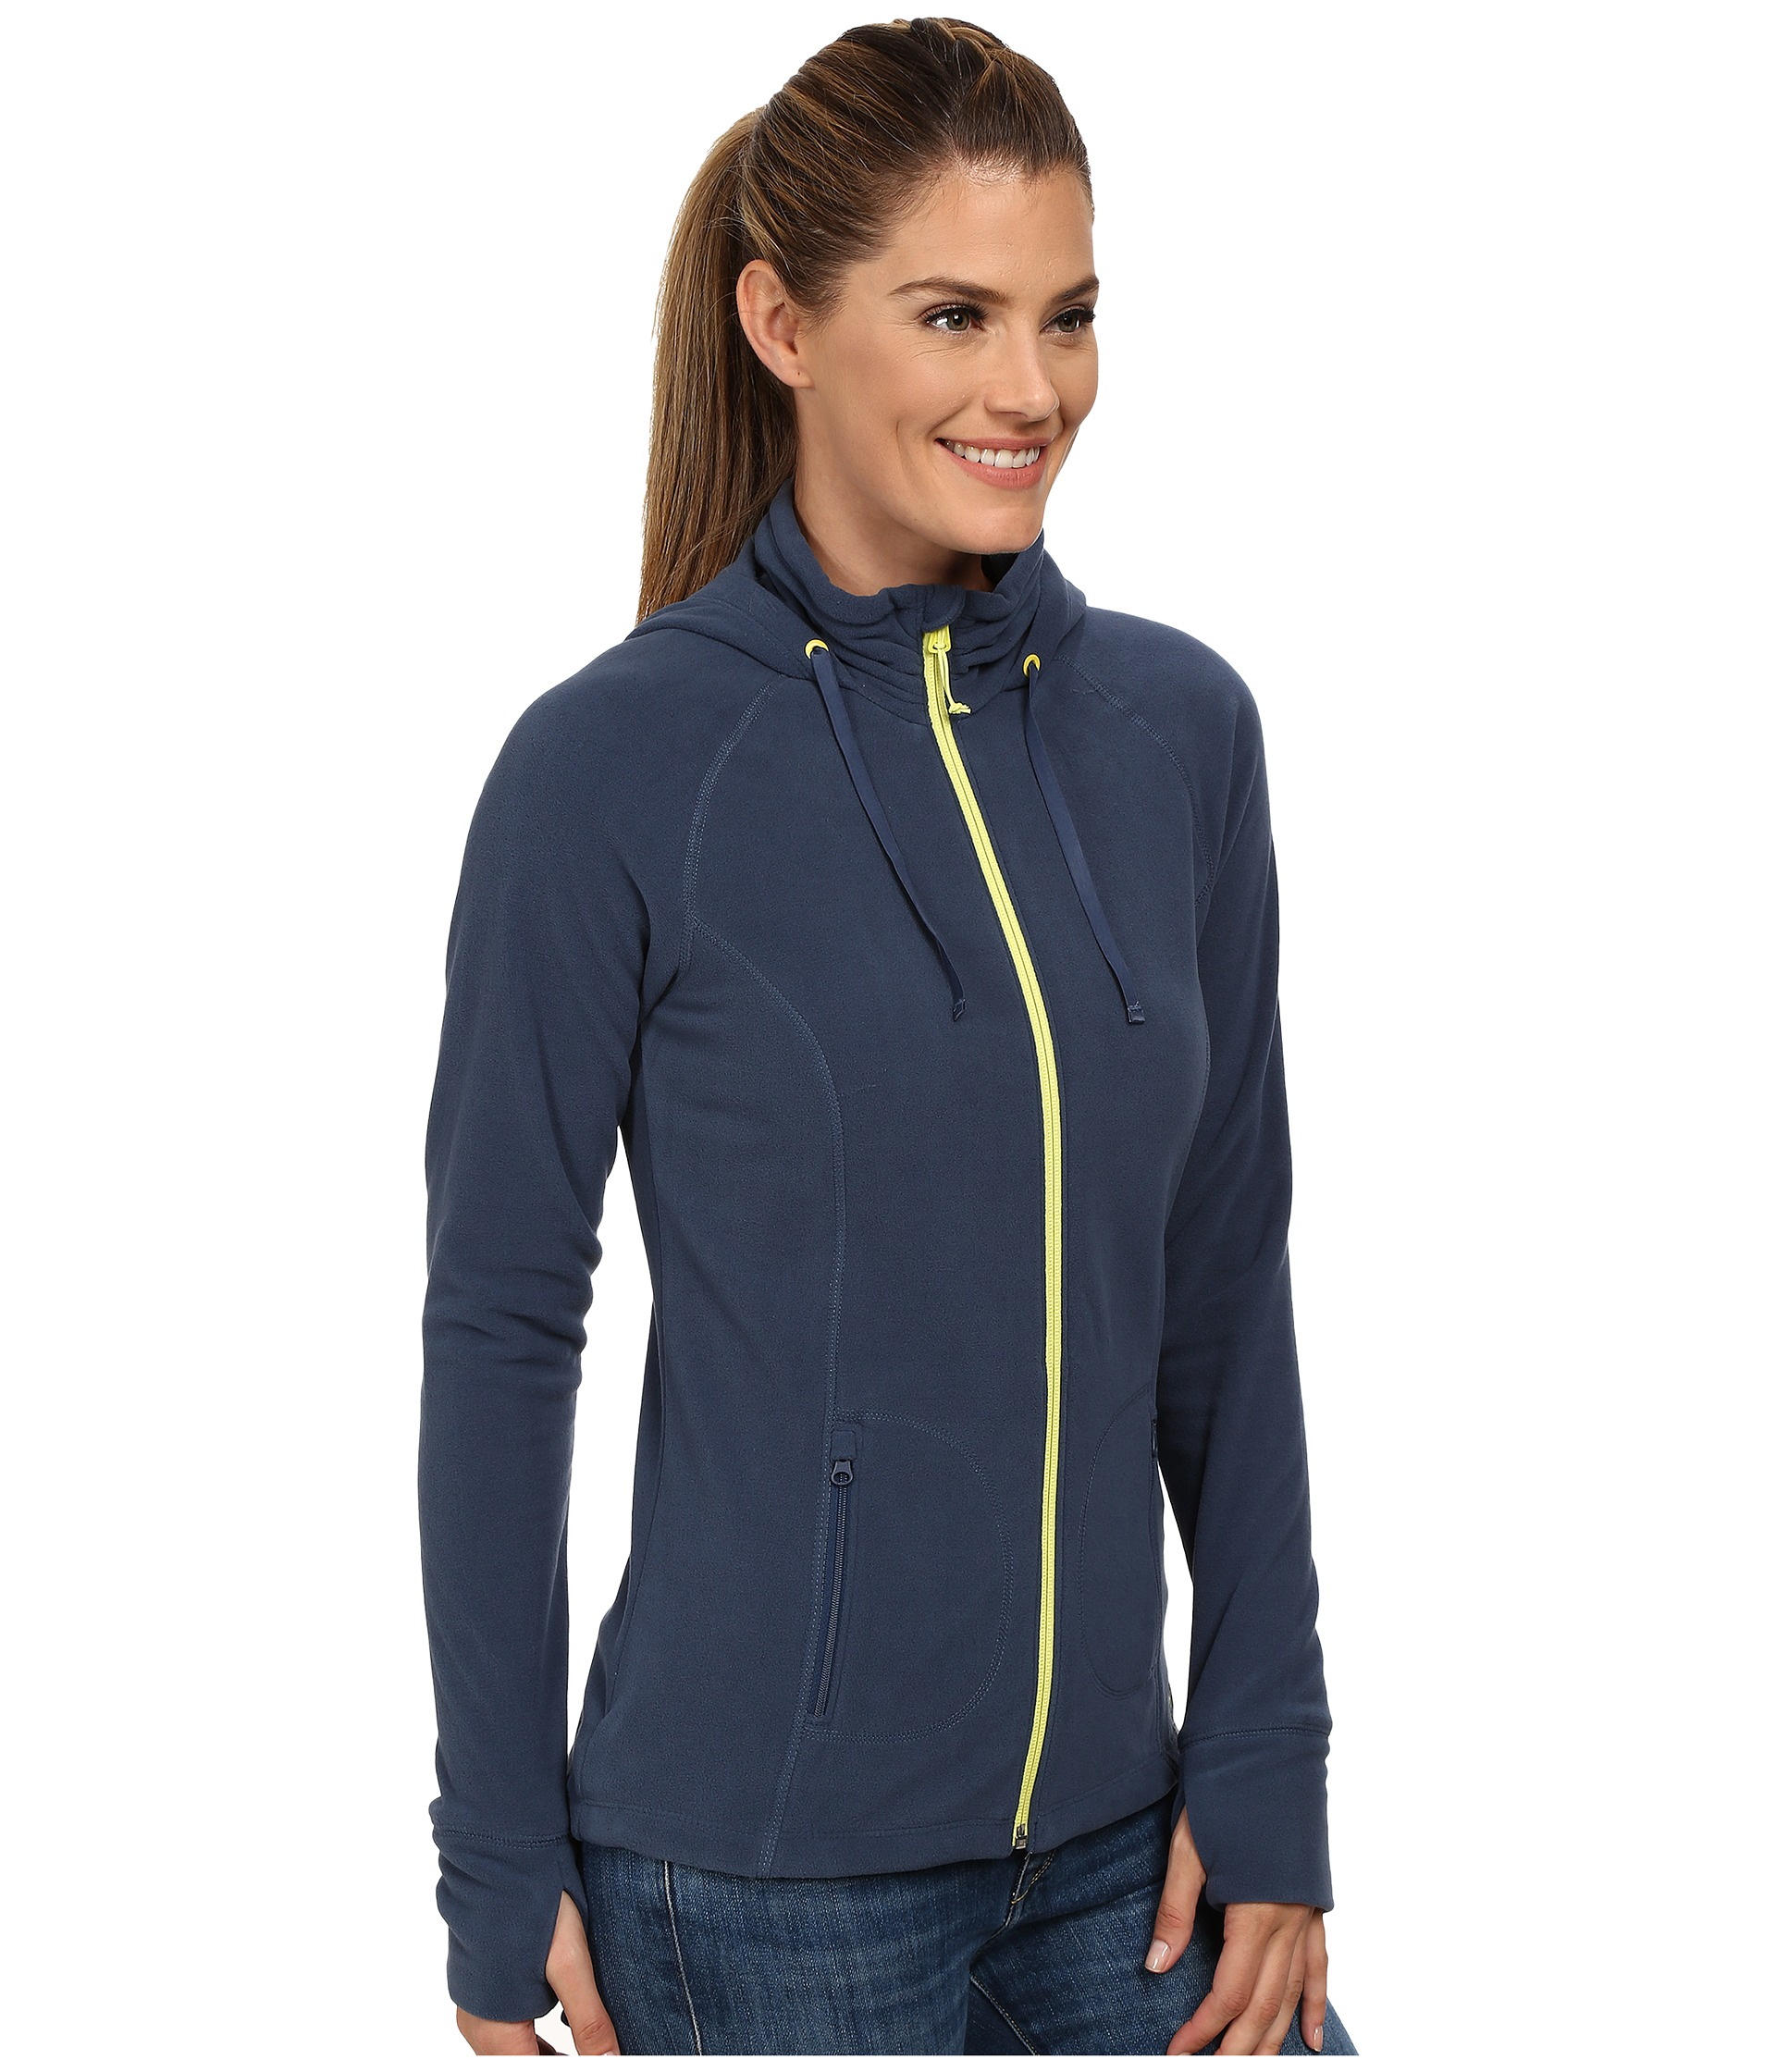 Womens Polo Hoodies Sale Polos Hodie Ralph Lauren Shipped Free At Zappos